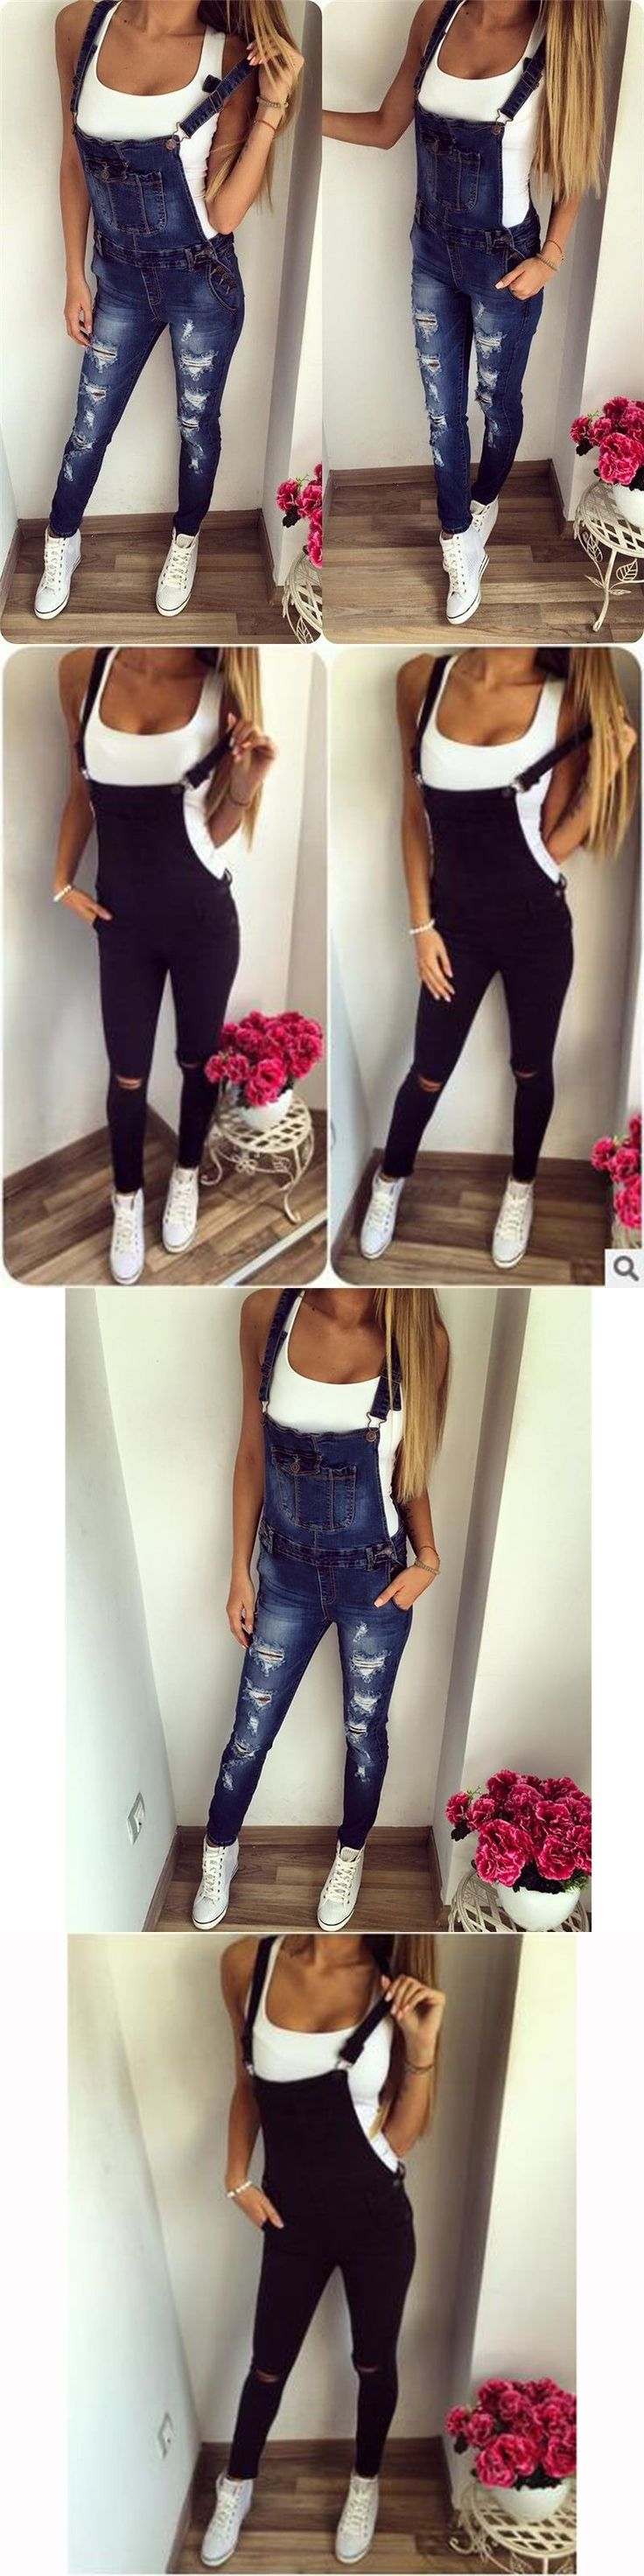 Casual Jumpsuits Women Solid Spring Ripped Hole Denim Jumpsuits Female Sexy Slim Push up Jeans Romper Freddy Denim Overalls z15 #rippedjeanswomenspring #rippedjeanswomencasual